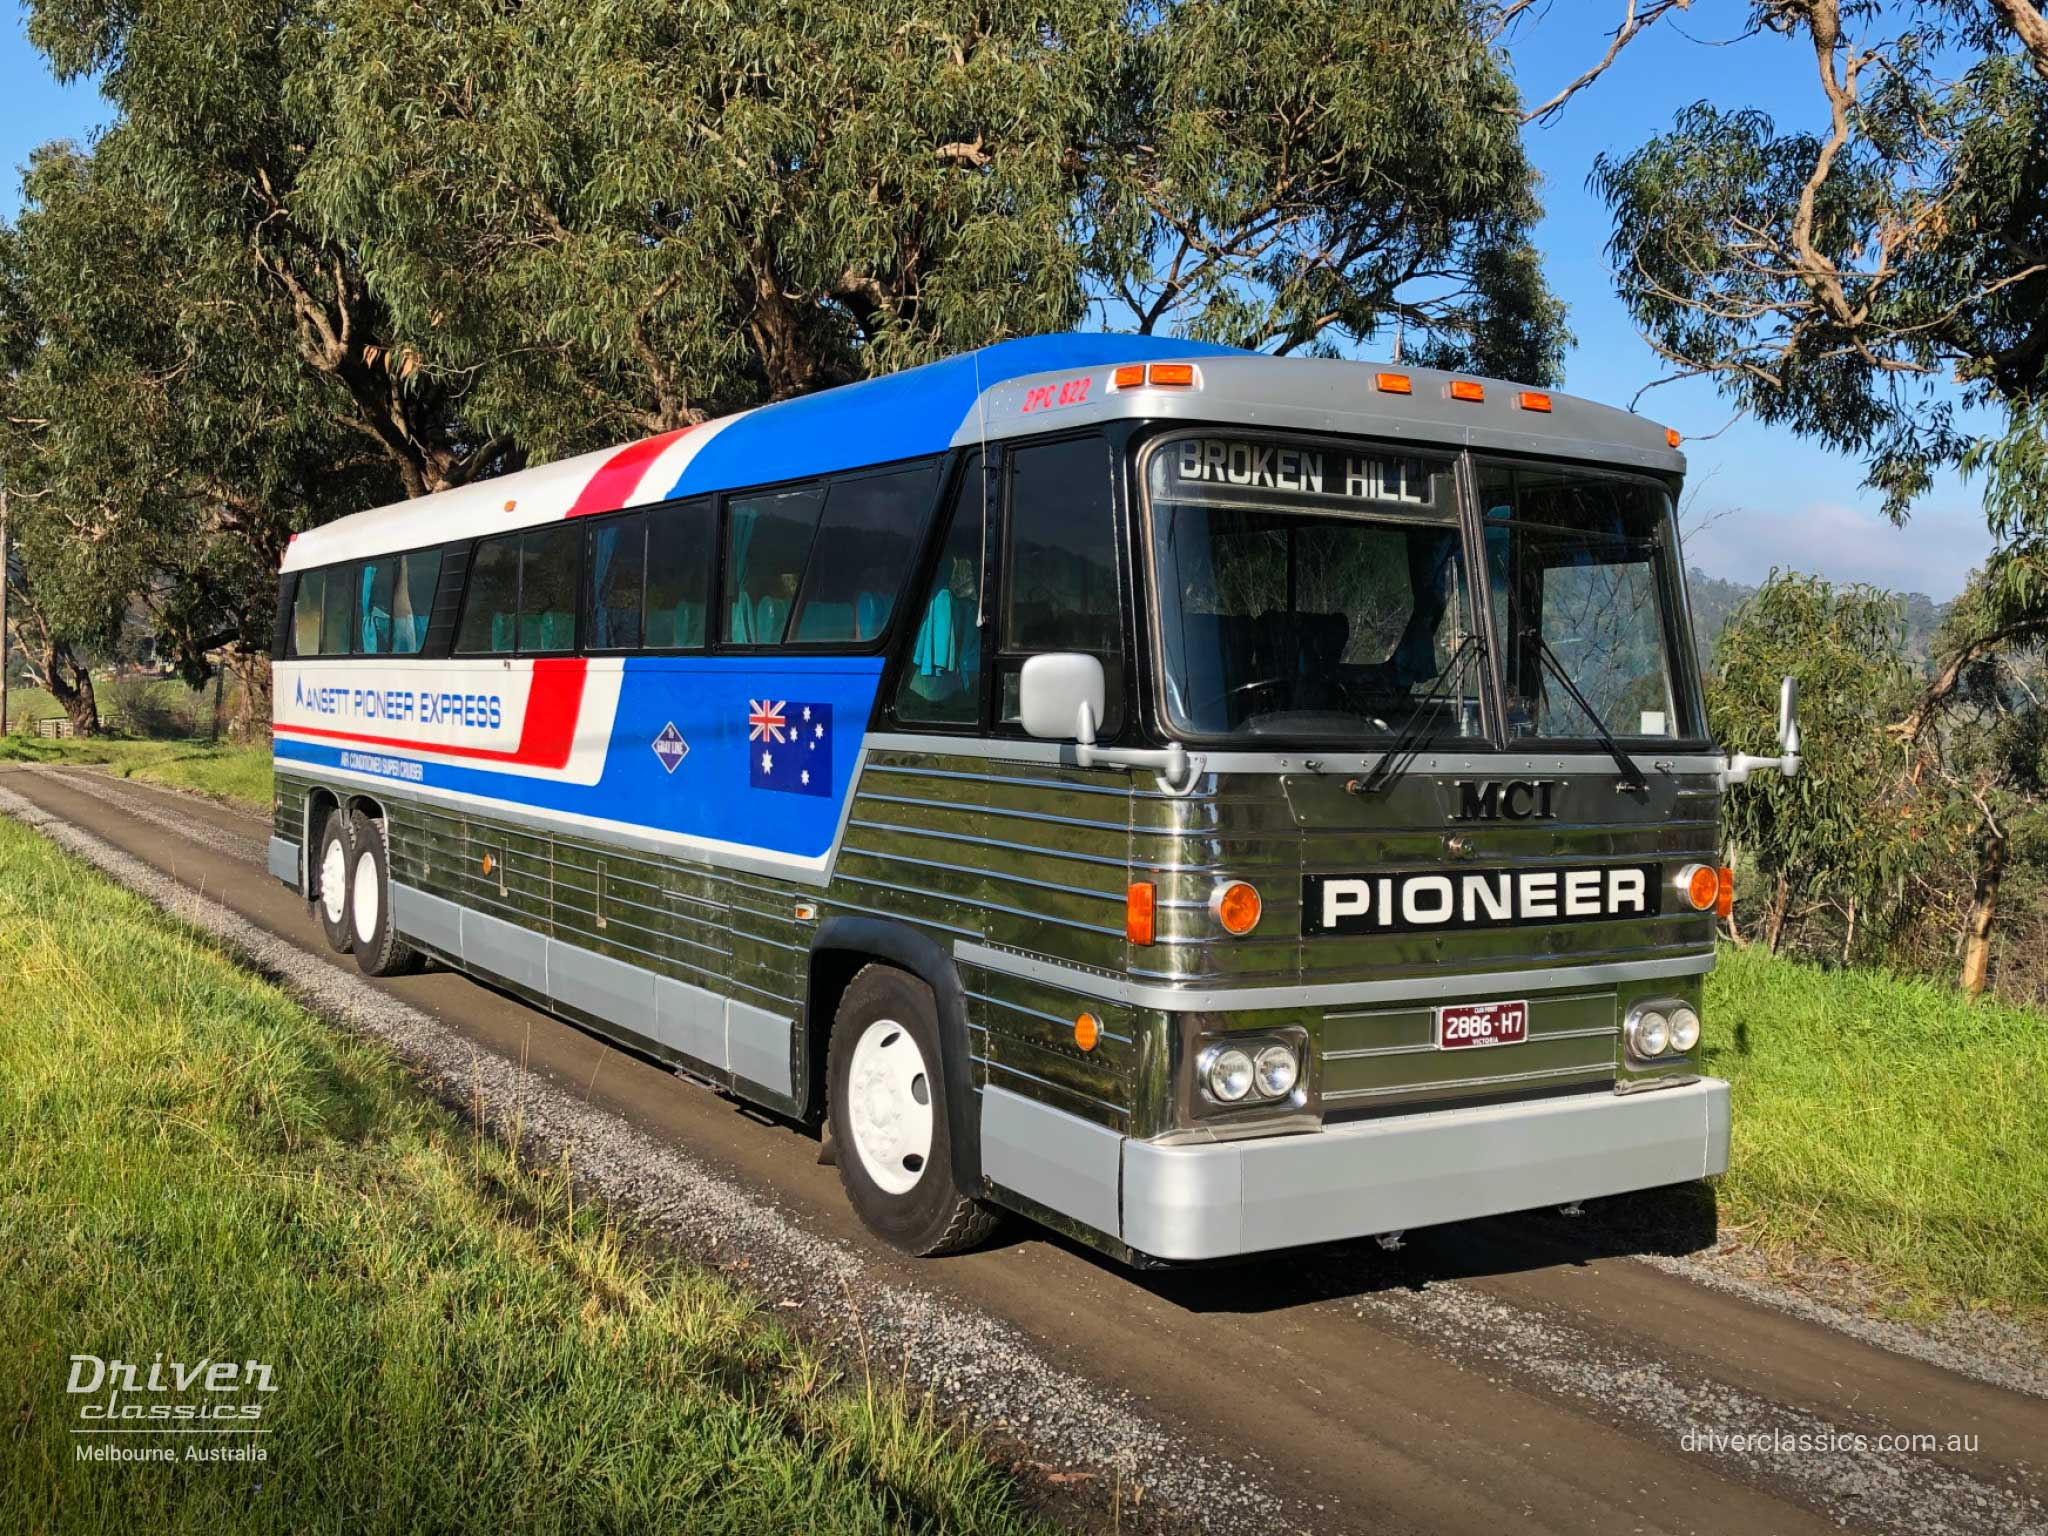 MCI MC8 bus (1976 version), front and road side, Lysterfield VIC. Photo taken Jul 2020